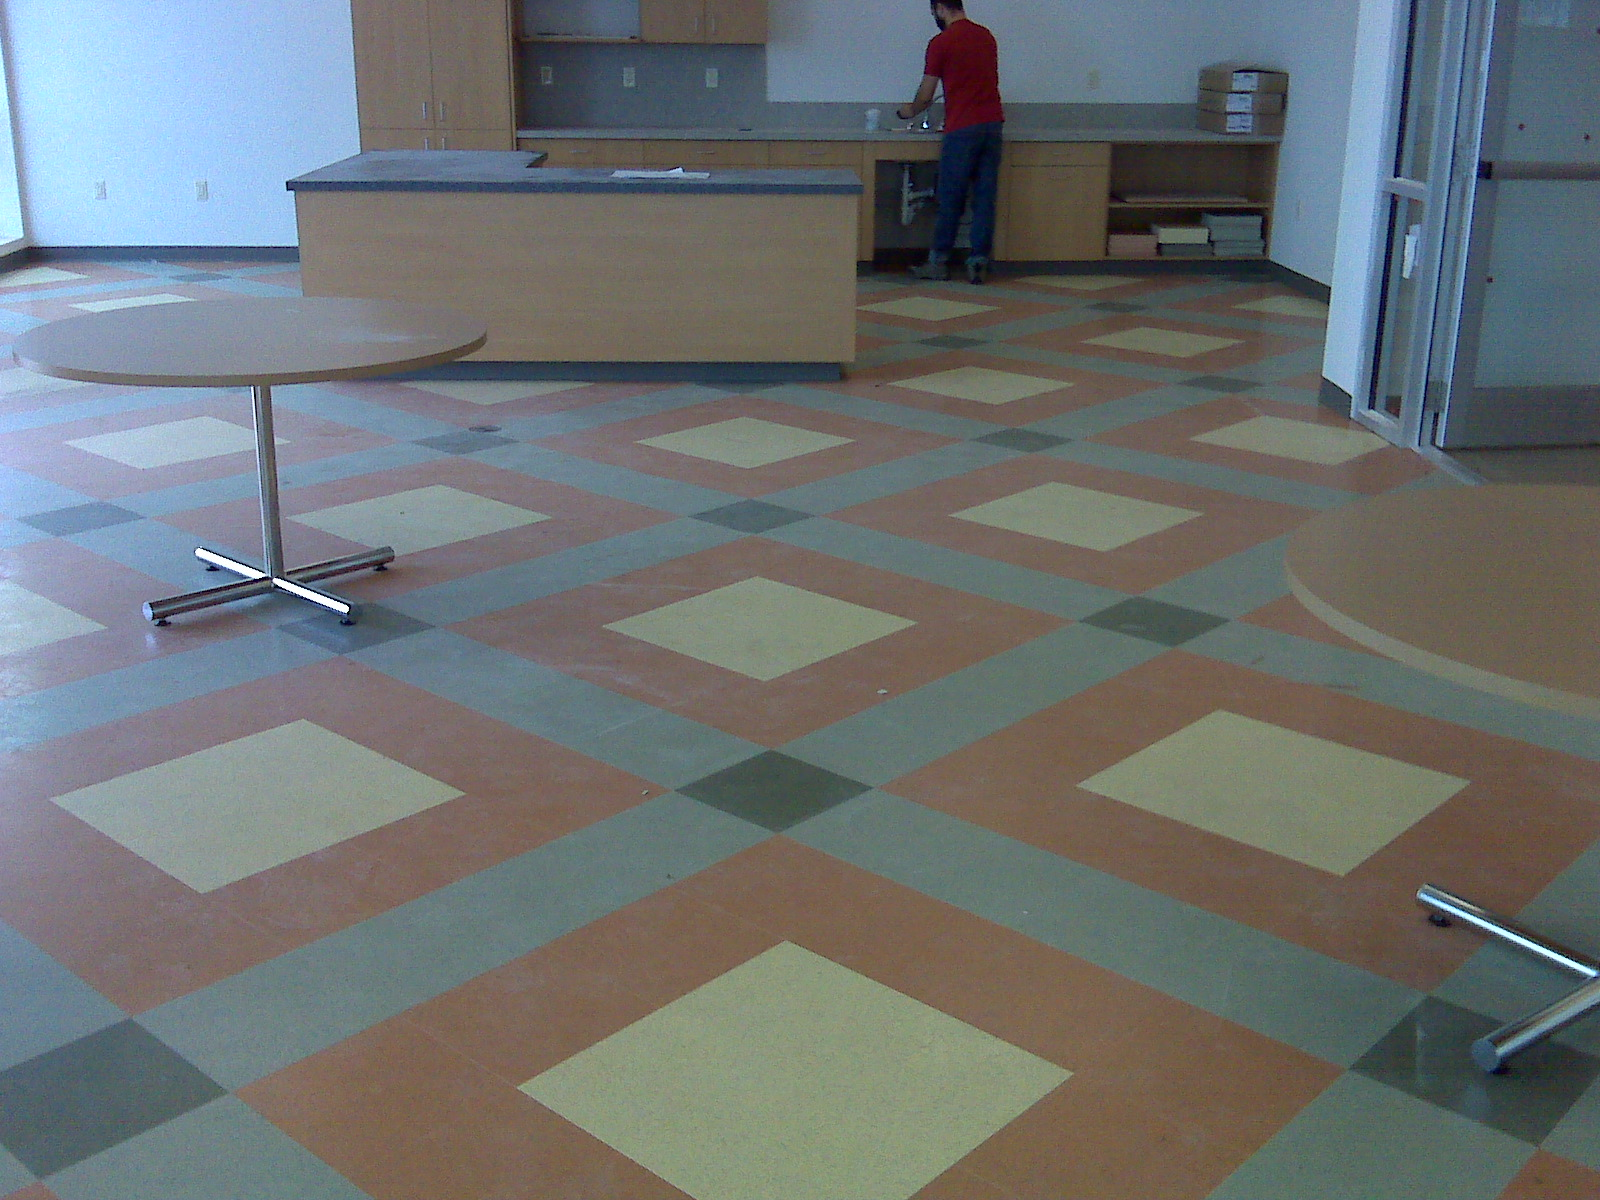 Resilient Flooring for Riverdale Vinyl Tile Rubber Flooring